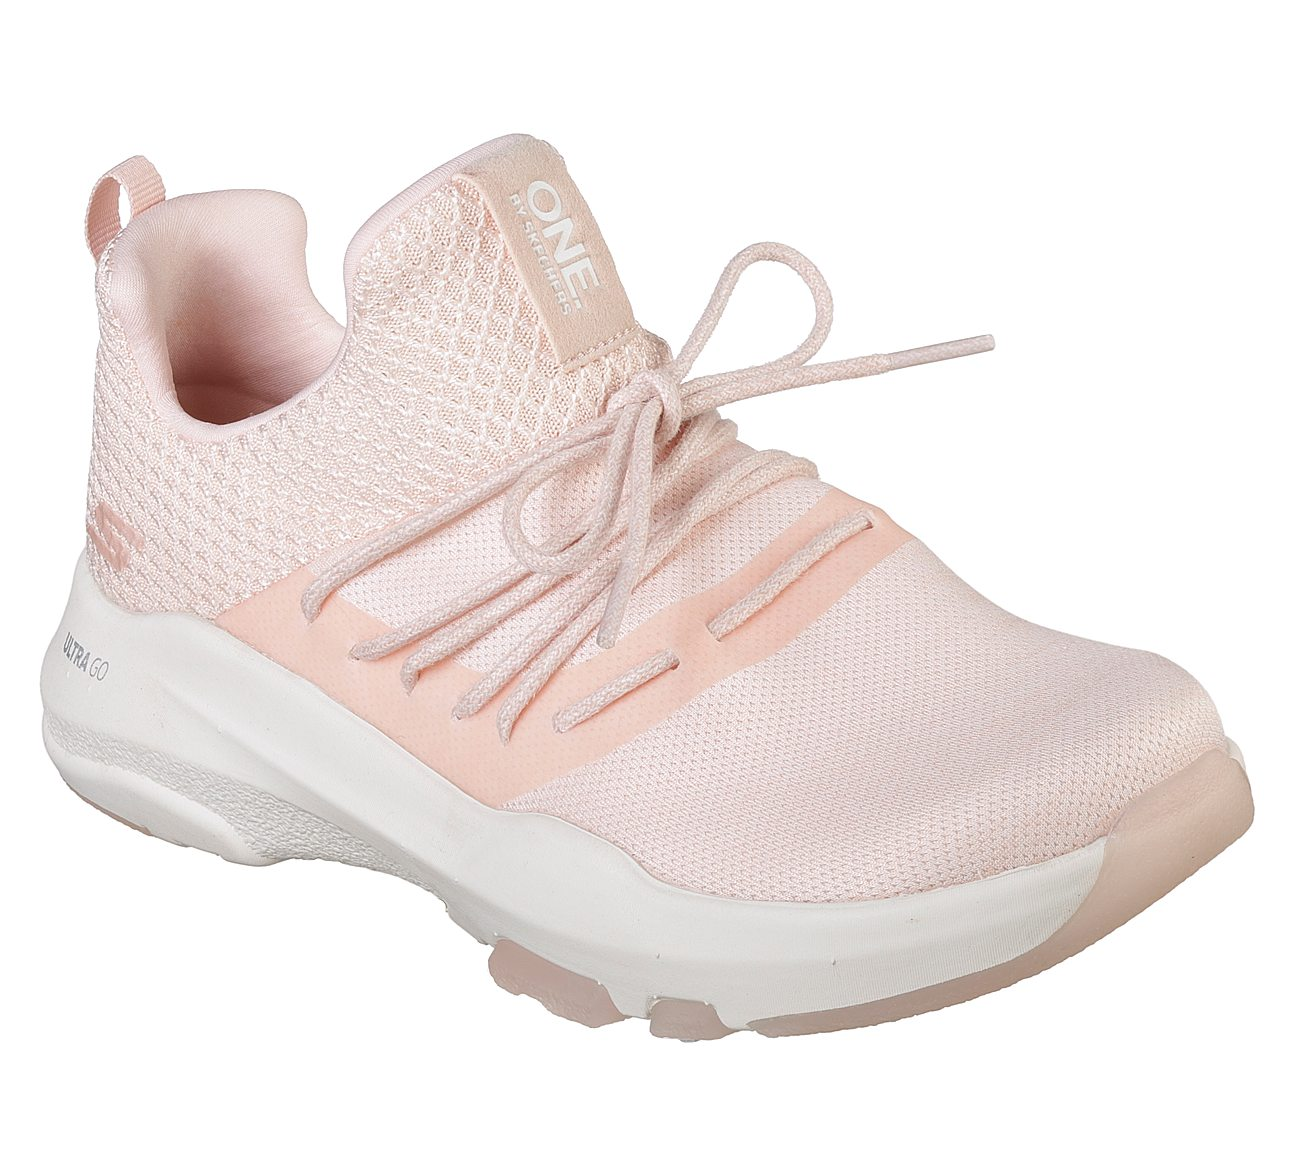 skechers - One of the more streamline takes on the trend, this ballerina pink slip on contains memory foam cushioning that'll have you feeling like you're walking on clouds. $70, sketchers.com